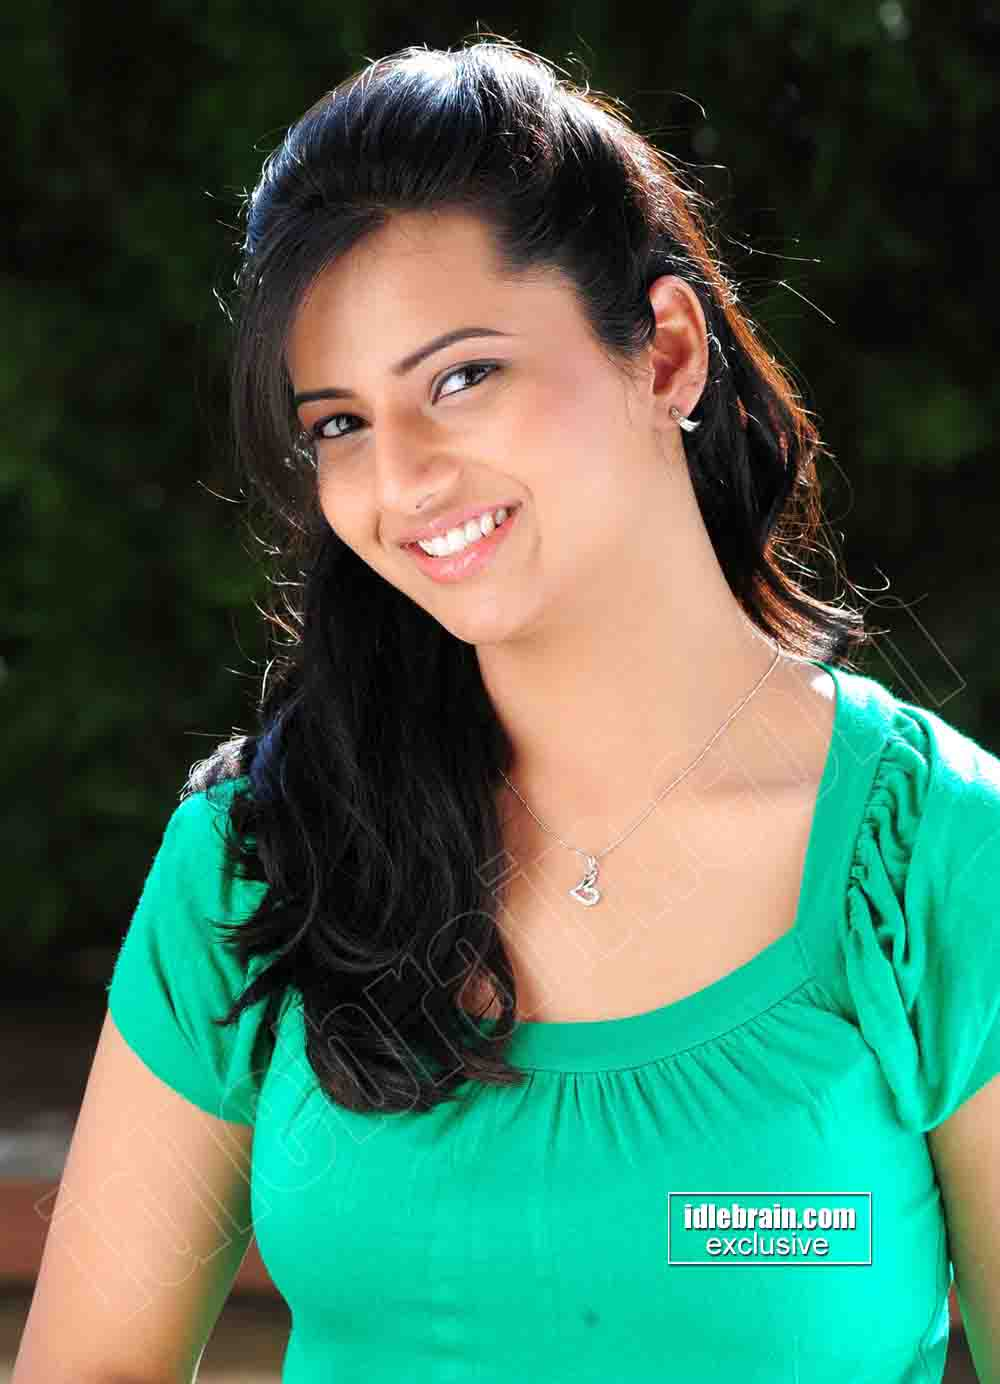 HD WALLPAPERS: CUTE ACTRESS FACE HD WALLPAPERS